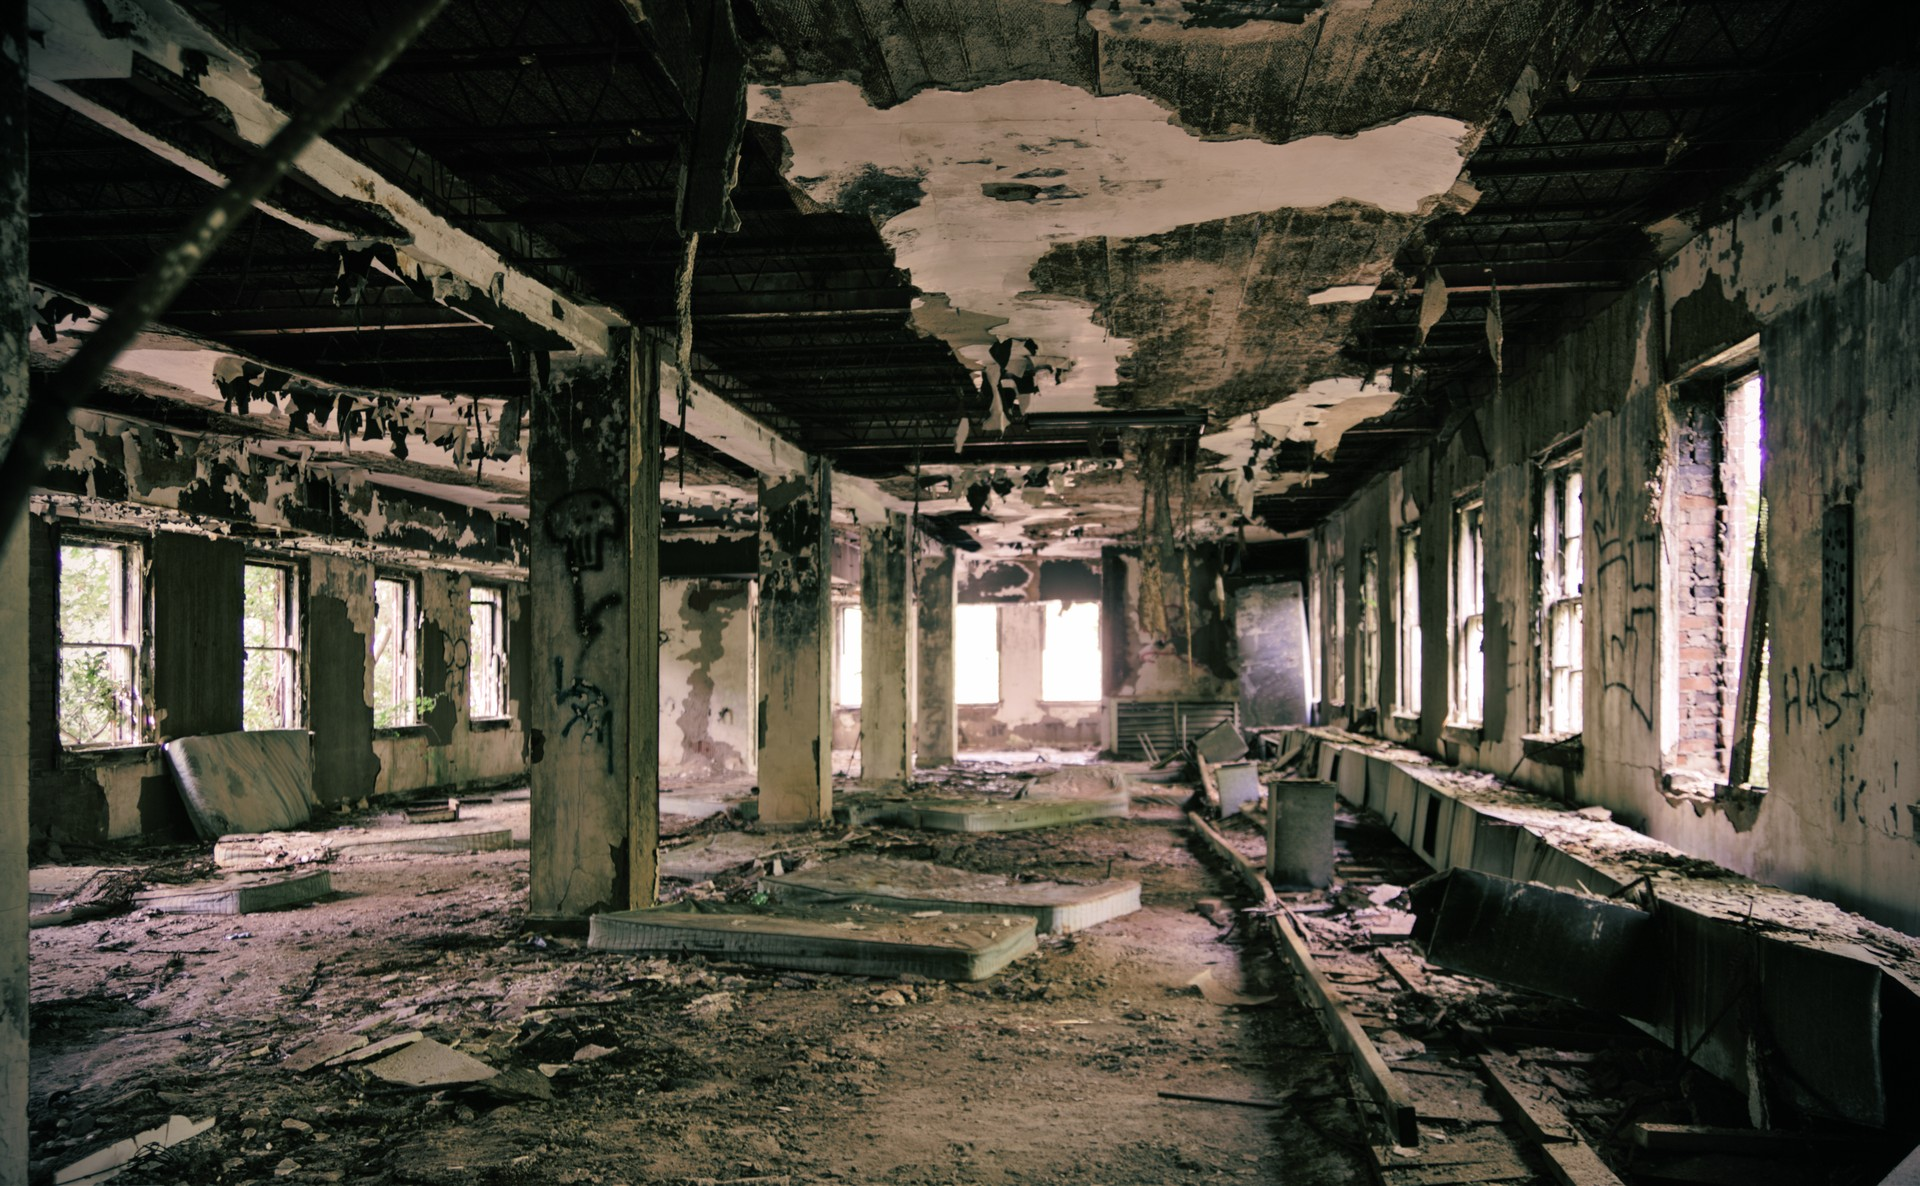 Charred interior of the Asylum.